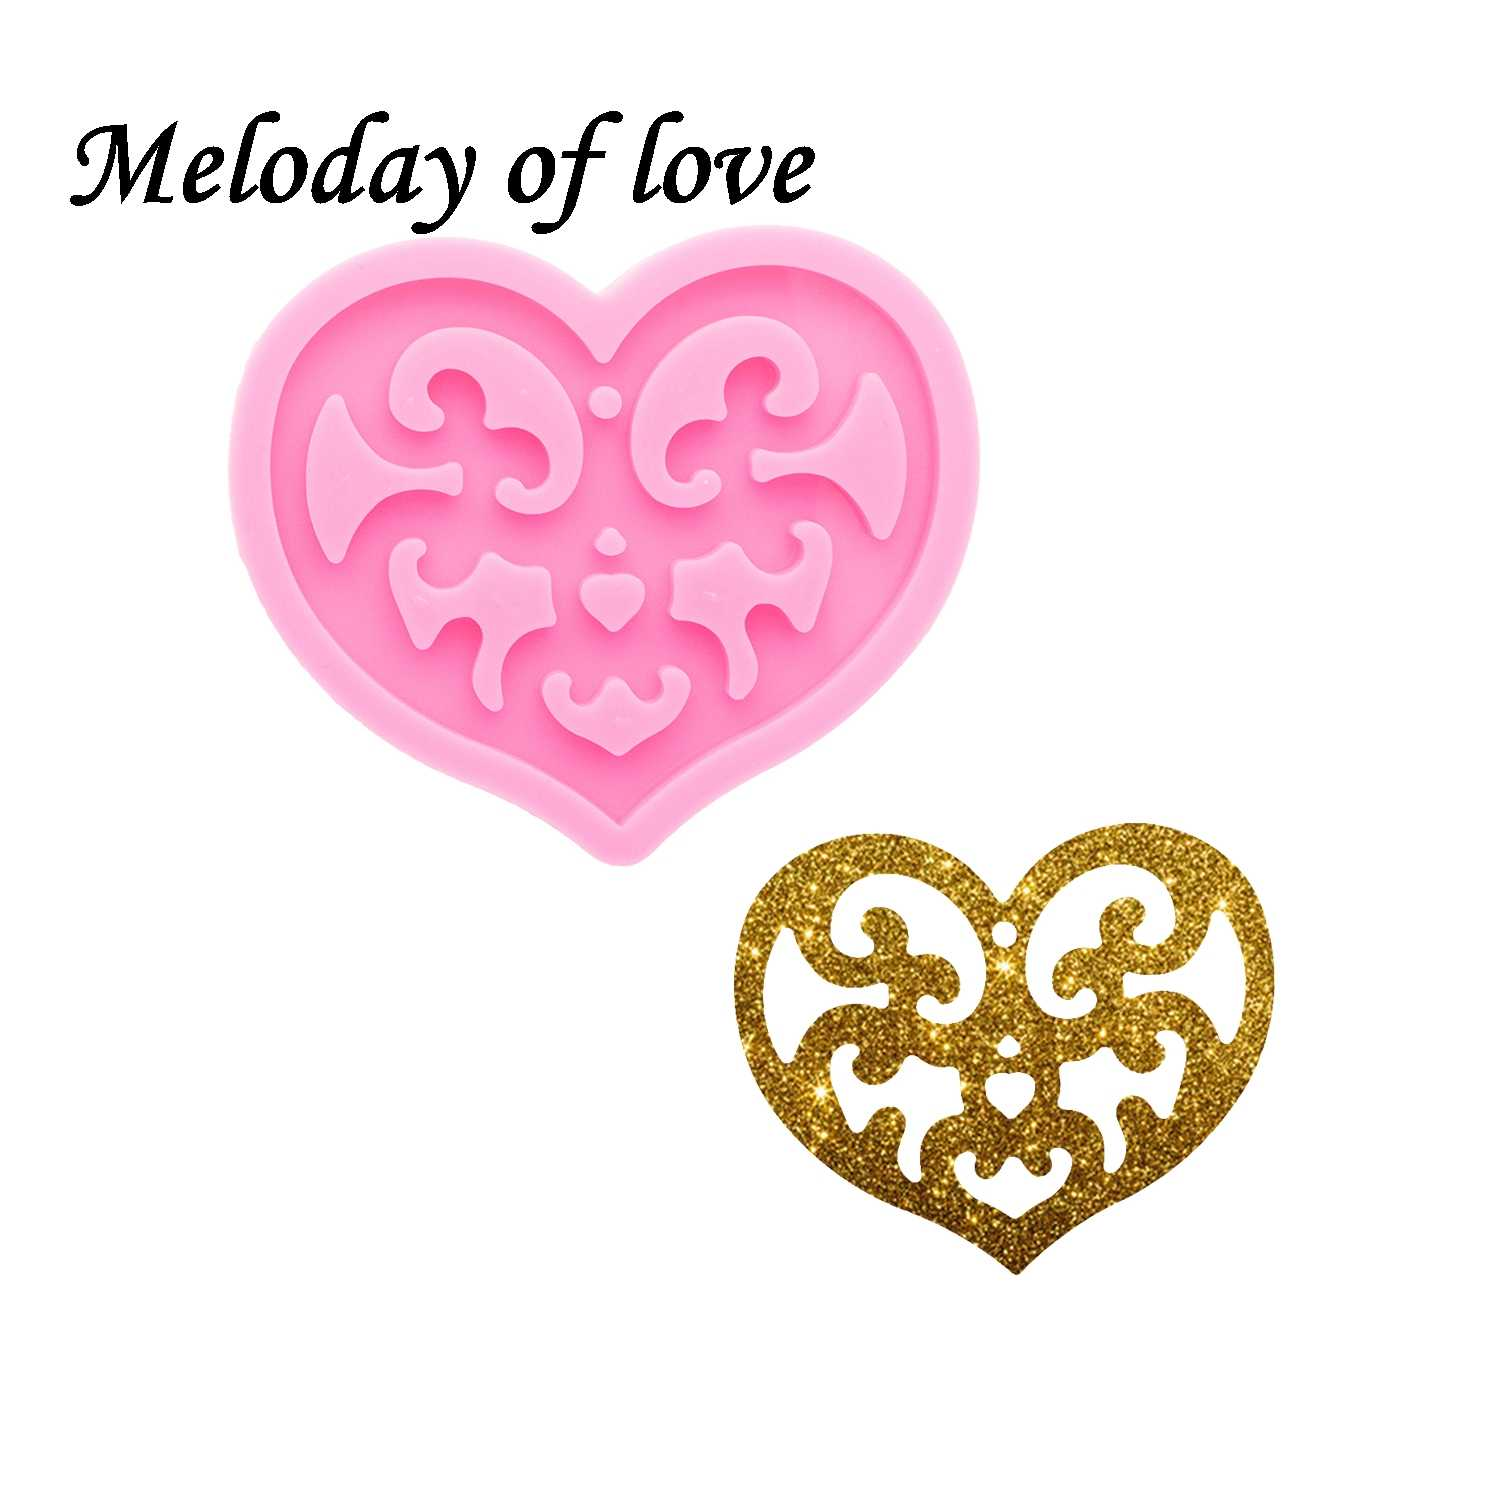 Love heart Shape Silicone Mold,Silicone Keychain Mold,Pendant mold,Epoxy Resin,DIY Keychain,Jewelry Mold,Glitter Mold,Resin mold